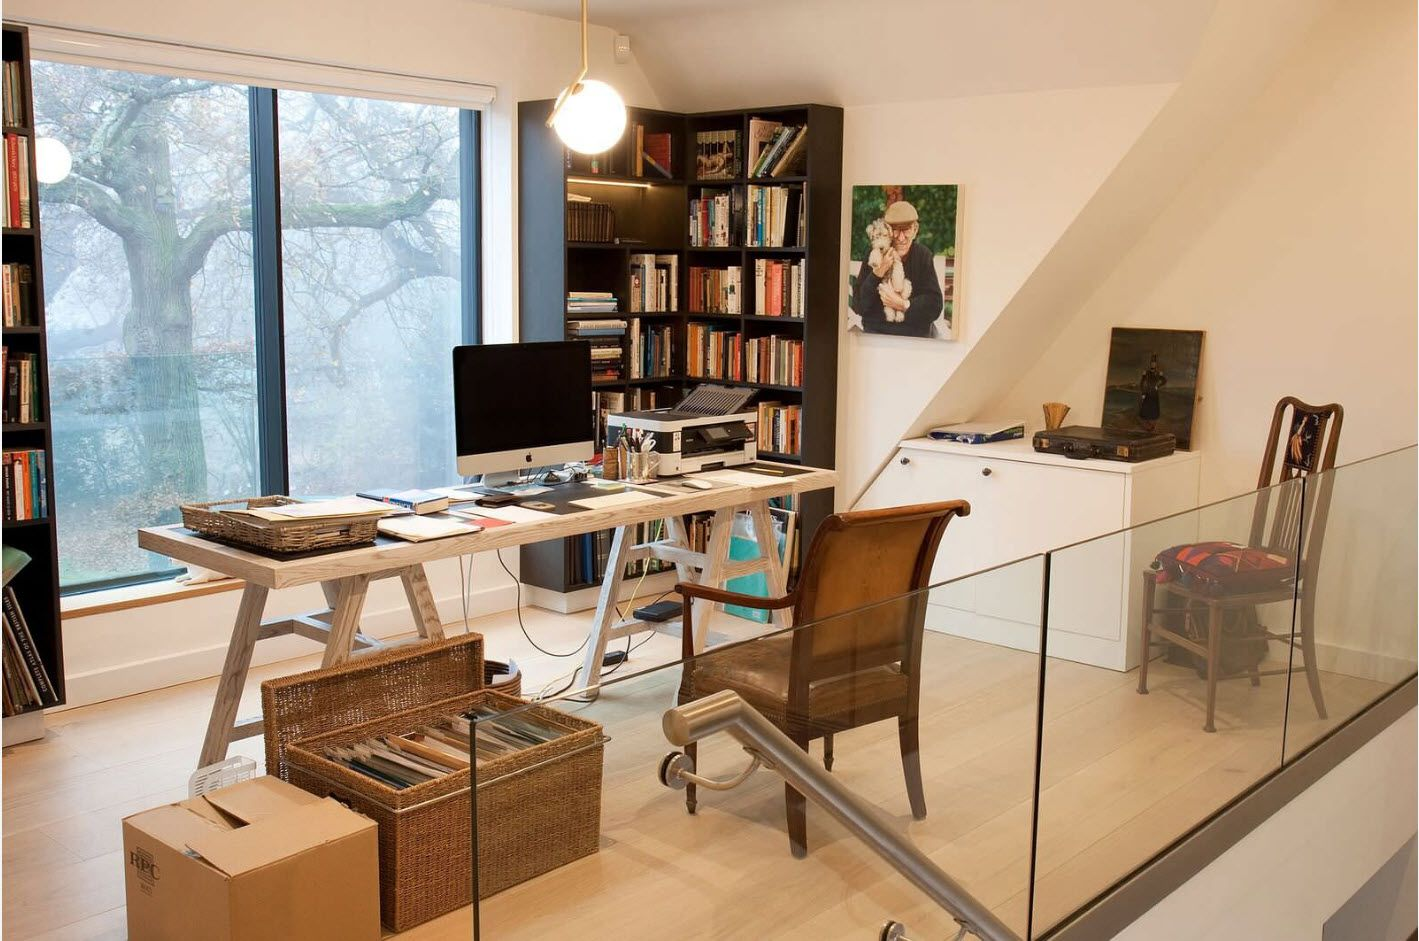 Top 100 Modern Home Office Design Trends 2017. Angular book sleving and glass partitions in the working zone